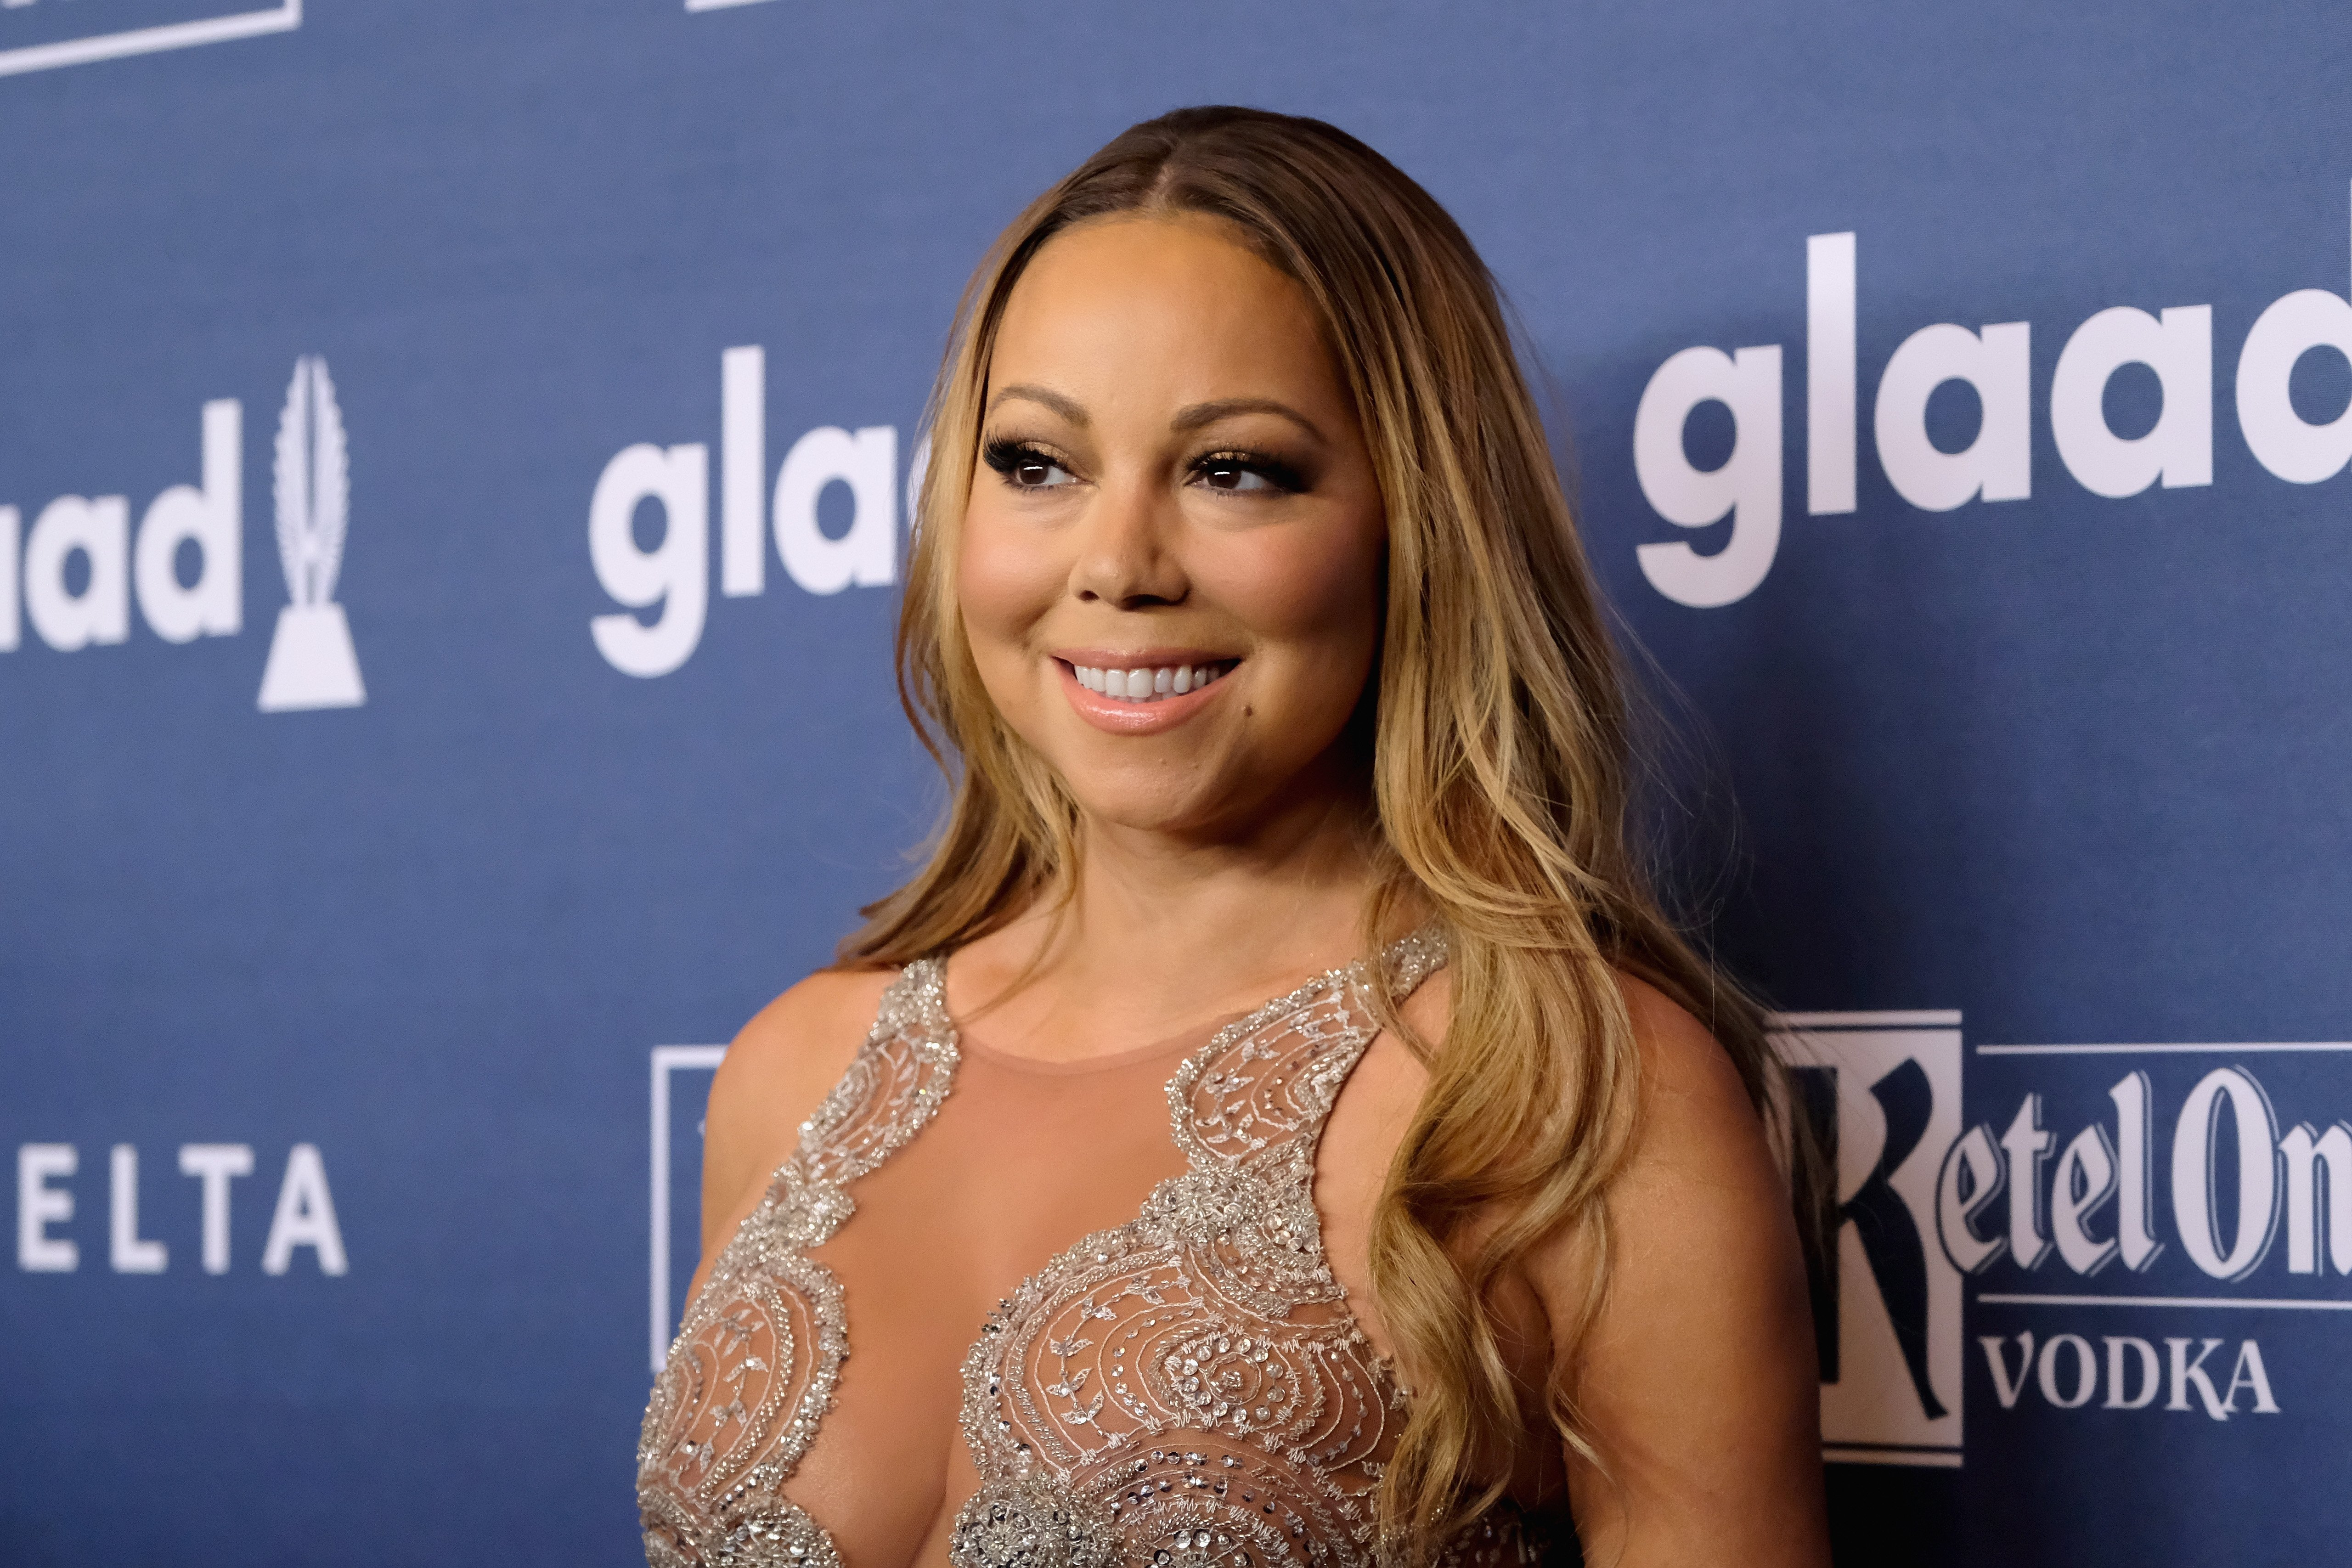 Mariah Carey attends at The 27th Annual GLAAD Media Awards with Hilton at Waldorf Astoria Hotel on May 14, 2016 in New York City. | Photo: GettyImages